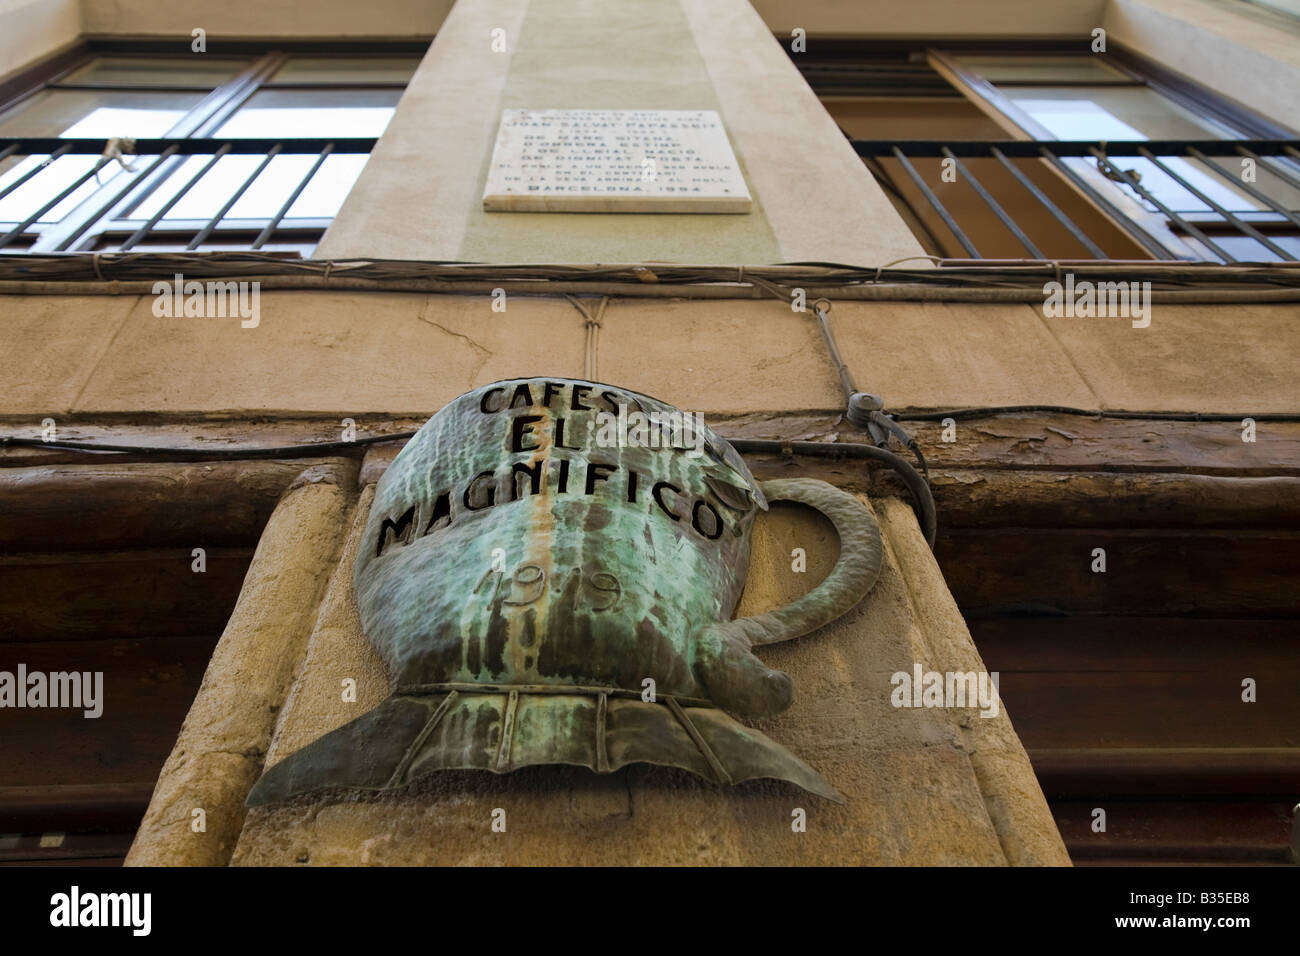 SPAIN Barcelona Giant copper coffee cup sculpture on exterior of Cafes el Magnifico store in Ribera District - Stock Image